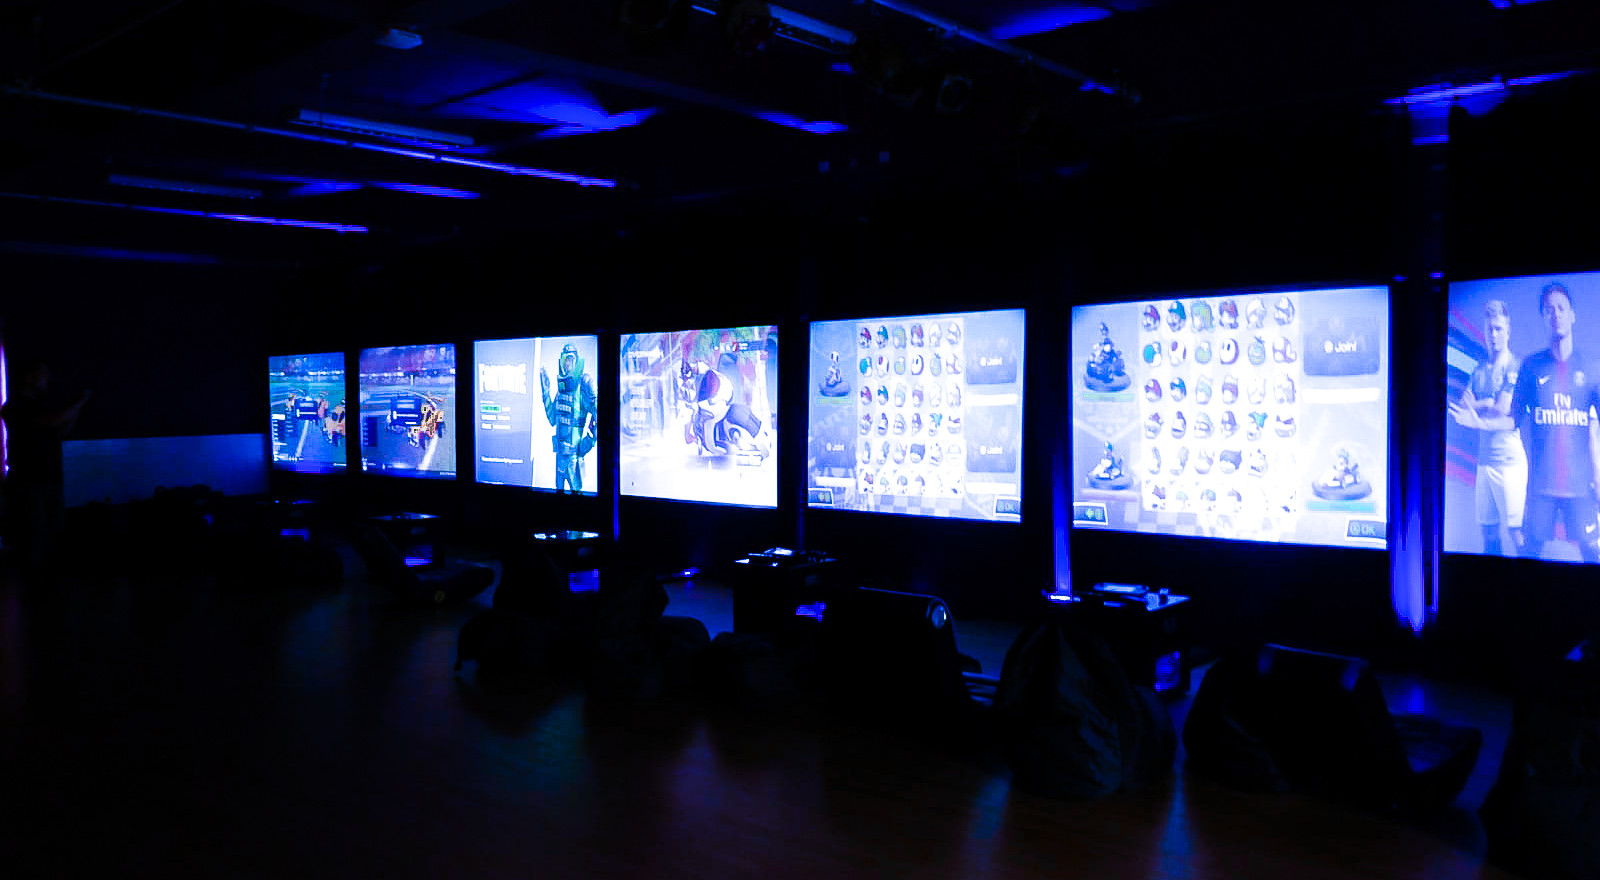 UP TO 36 GAMERS PLAYINGSIMULTANEOUSLY